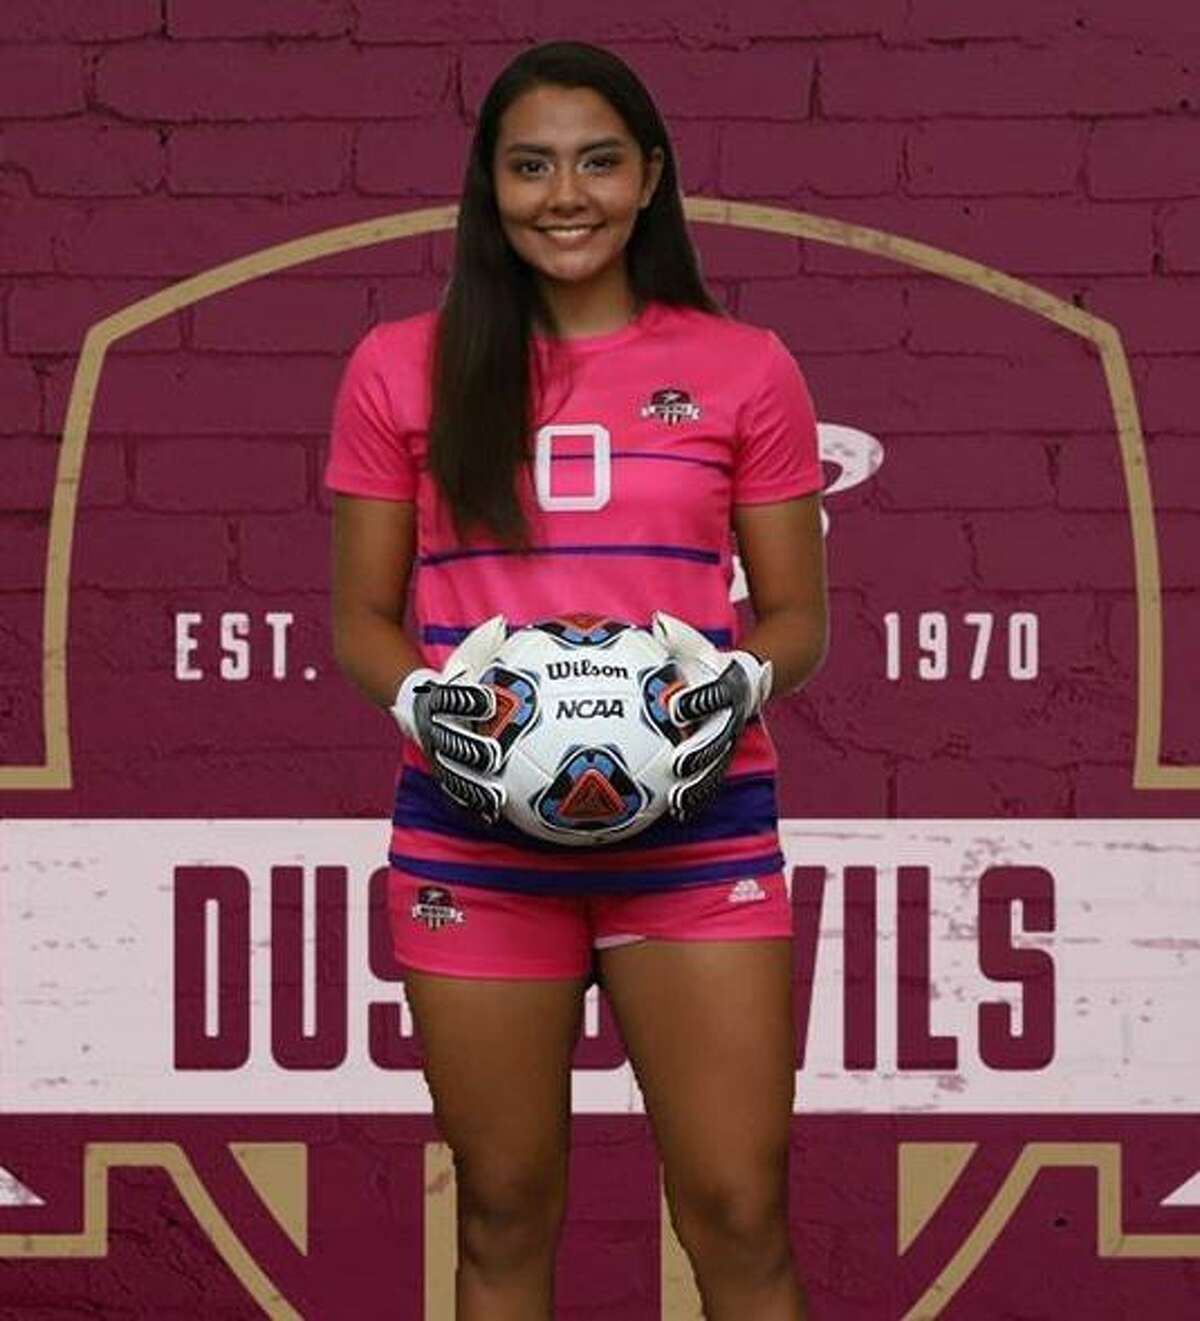 TAMIU freshman Alicia Huerta was named the Lone Star Conference Goalkeeper of the Week after stopping all 10 shots on goal in her first collegiate action.